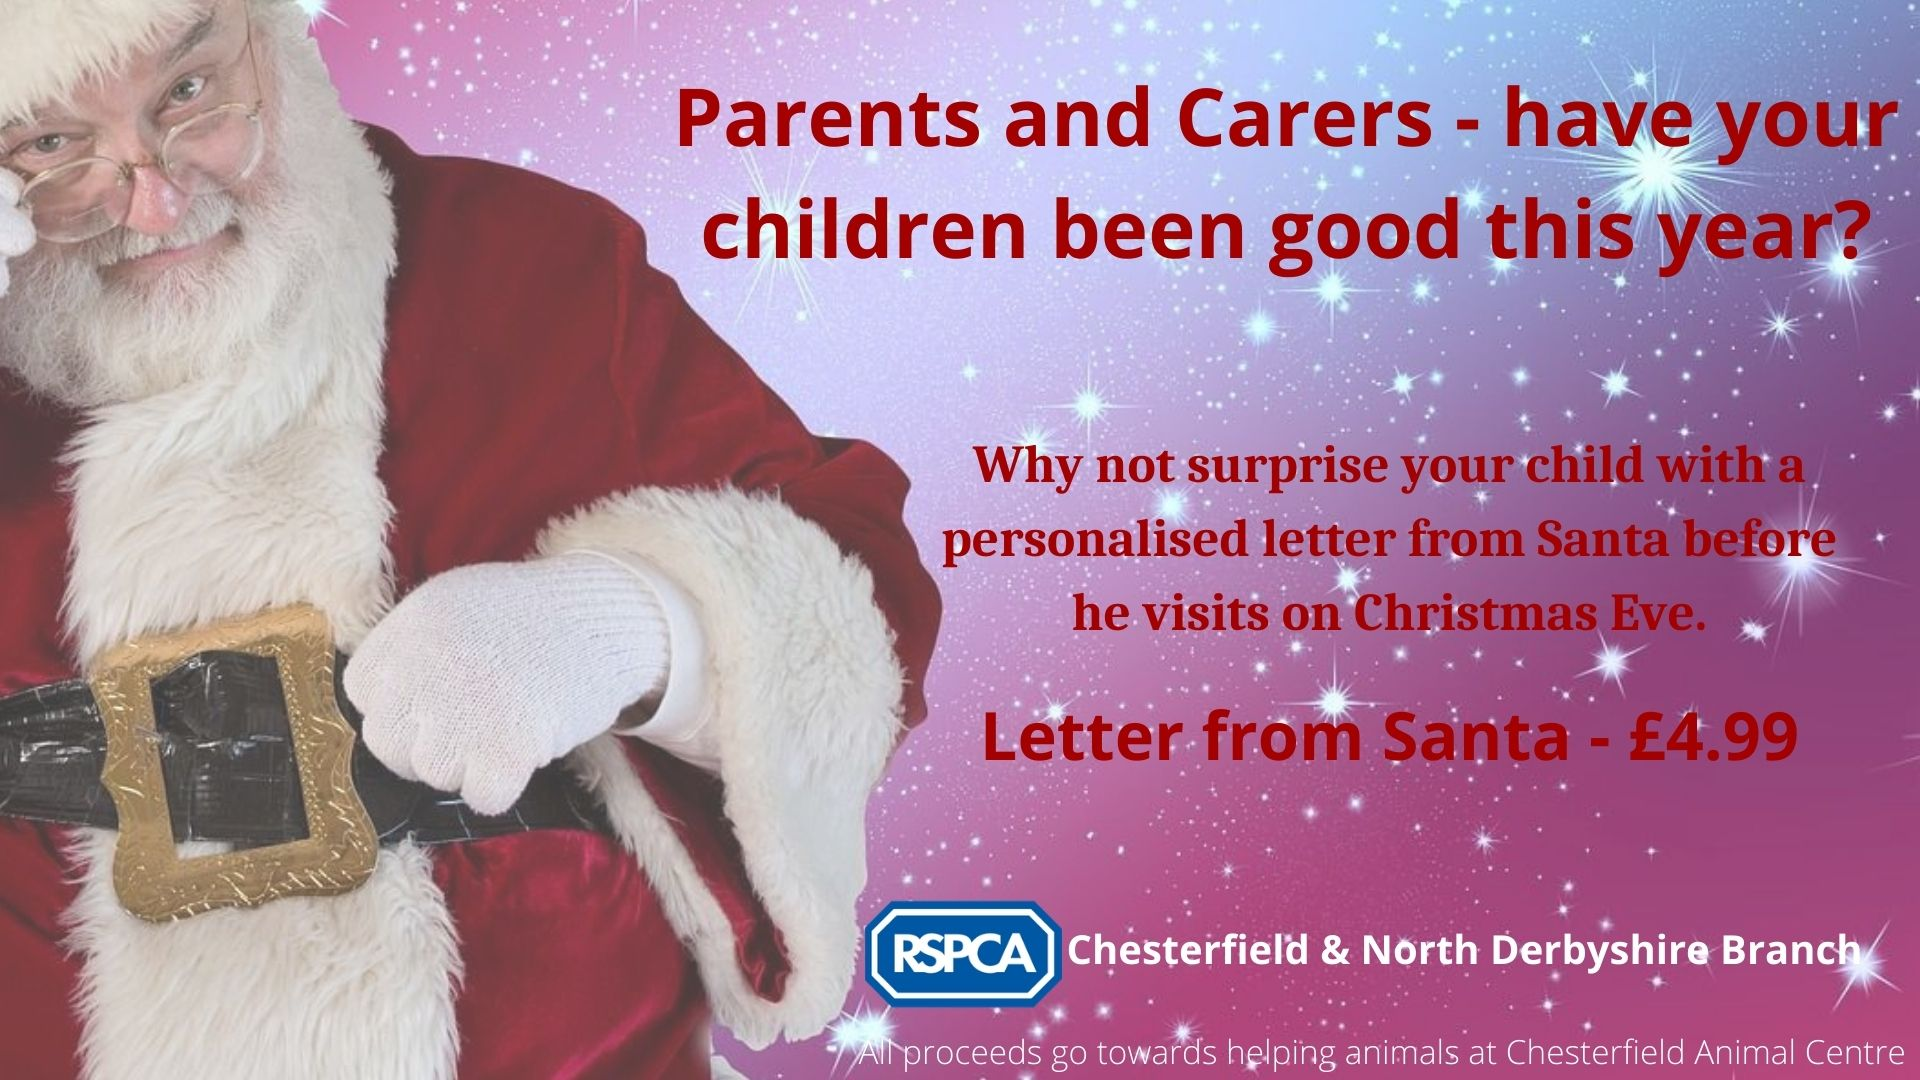 Home Rspca Chesterfield North Derbyshire Branch